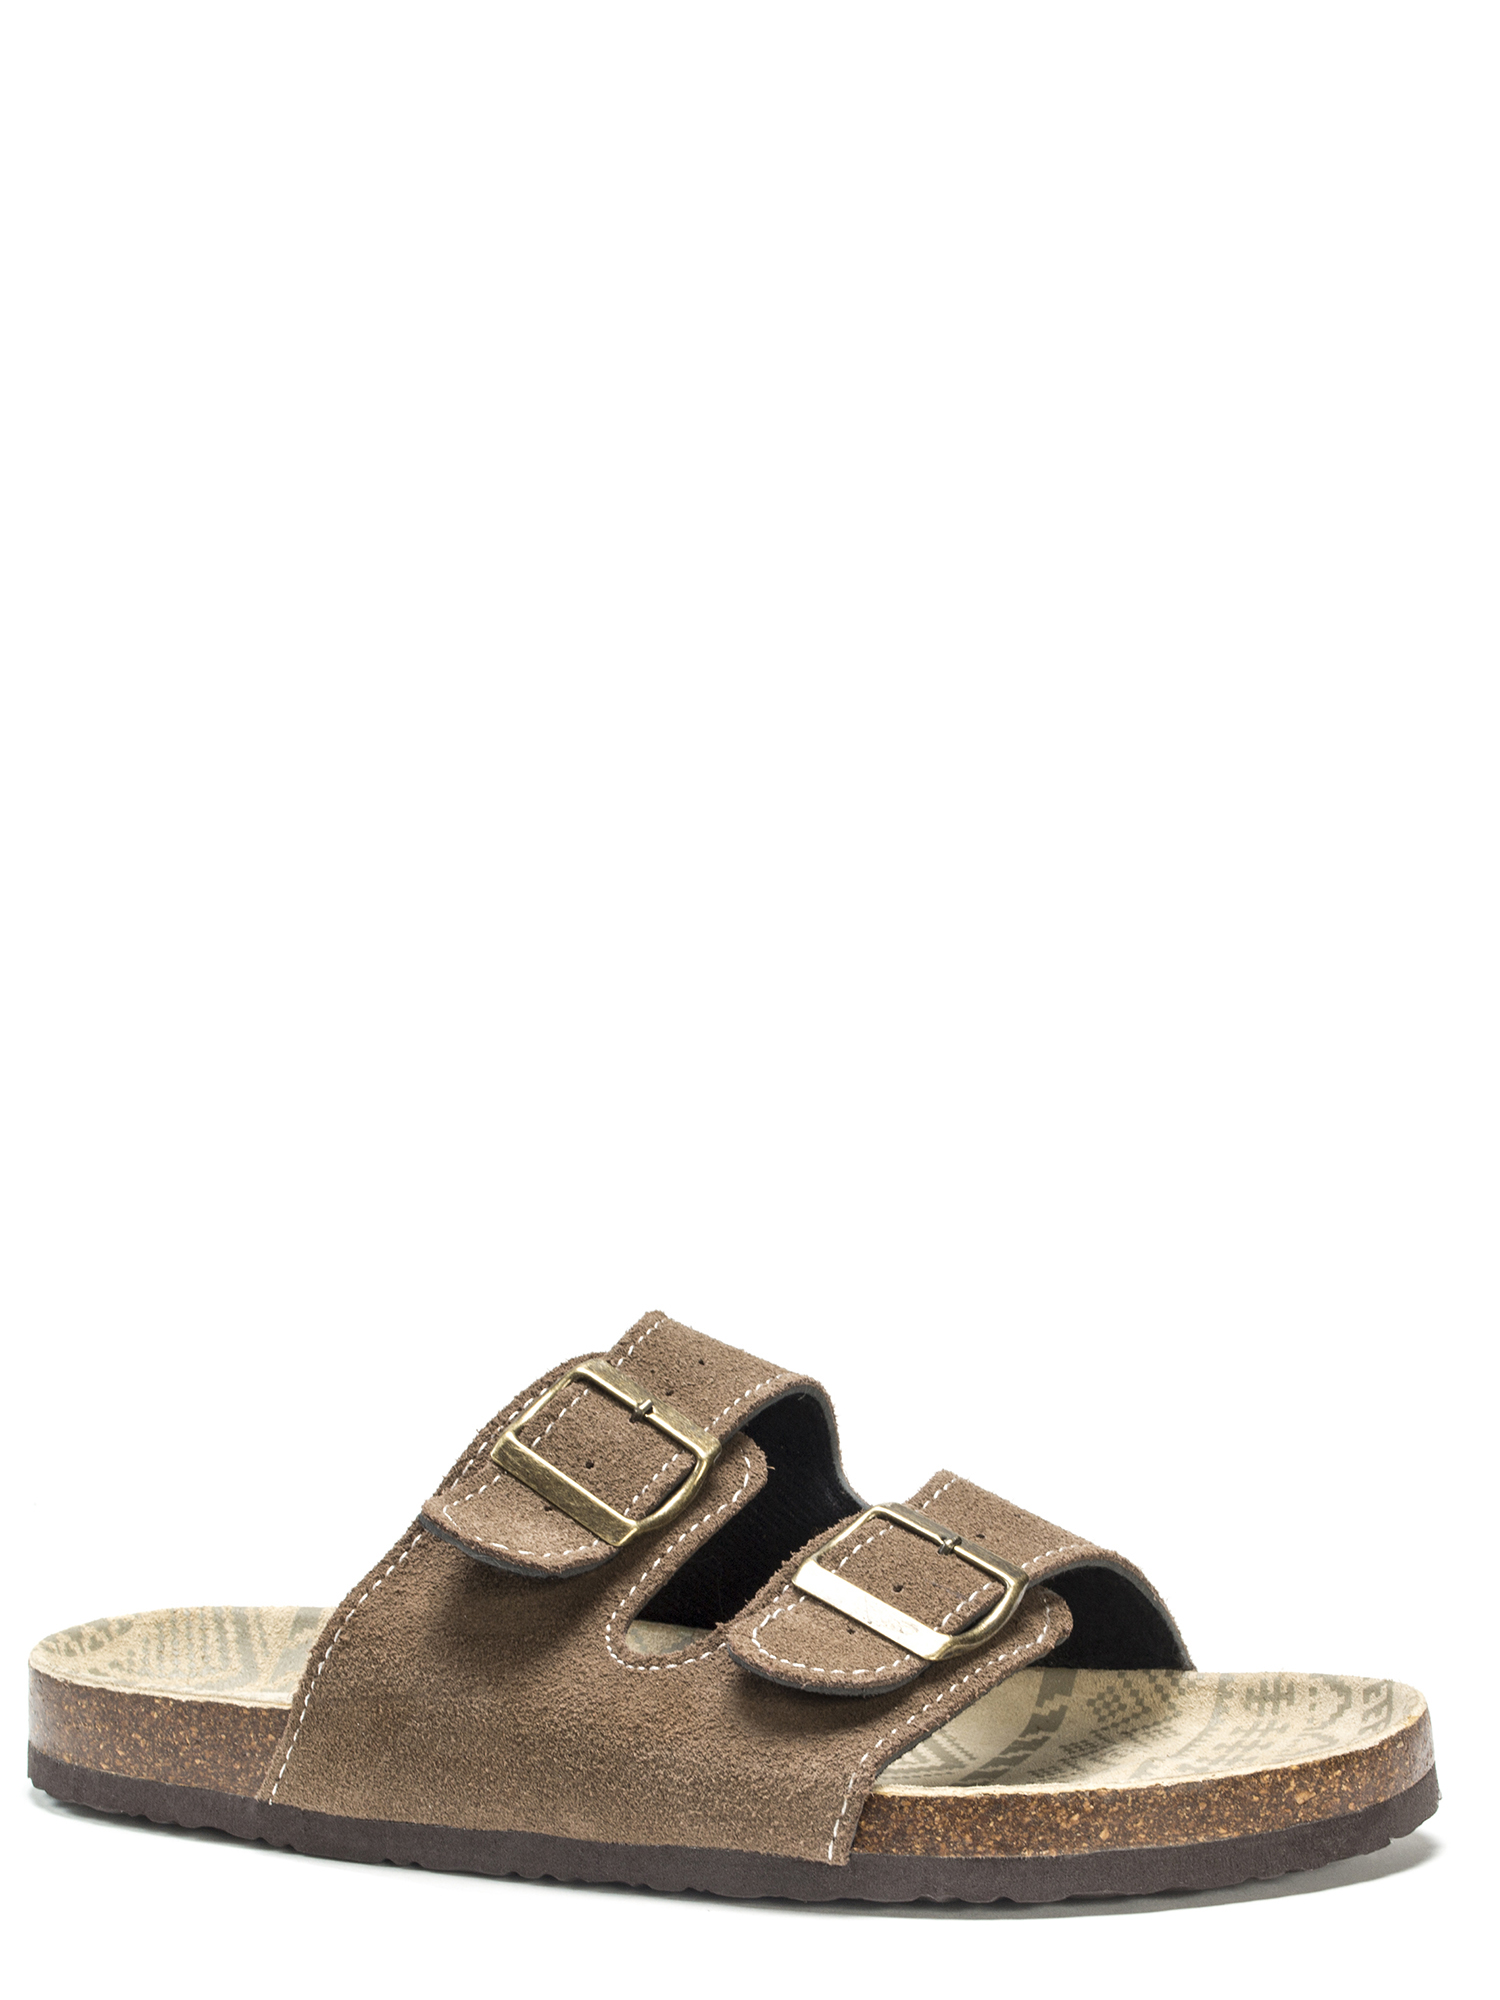 Men's Parker Duo Strapped Sandals